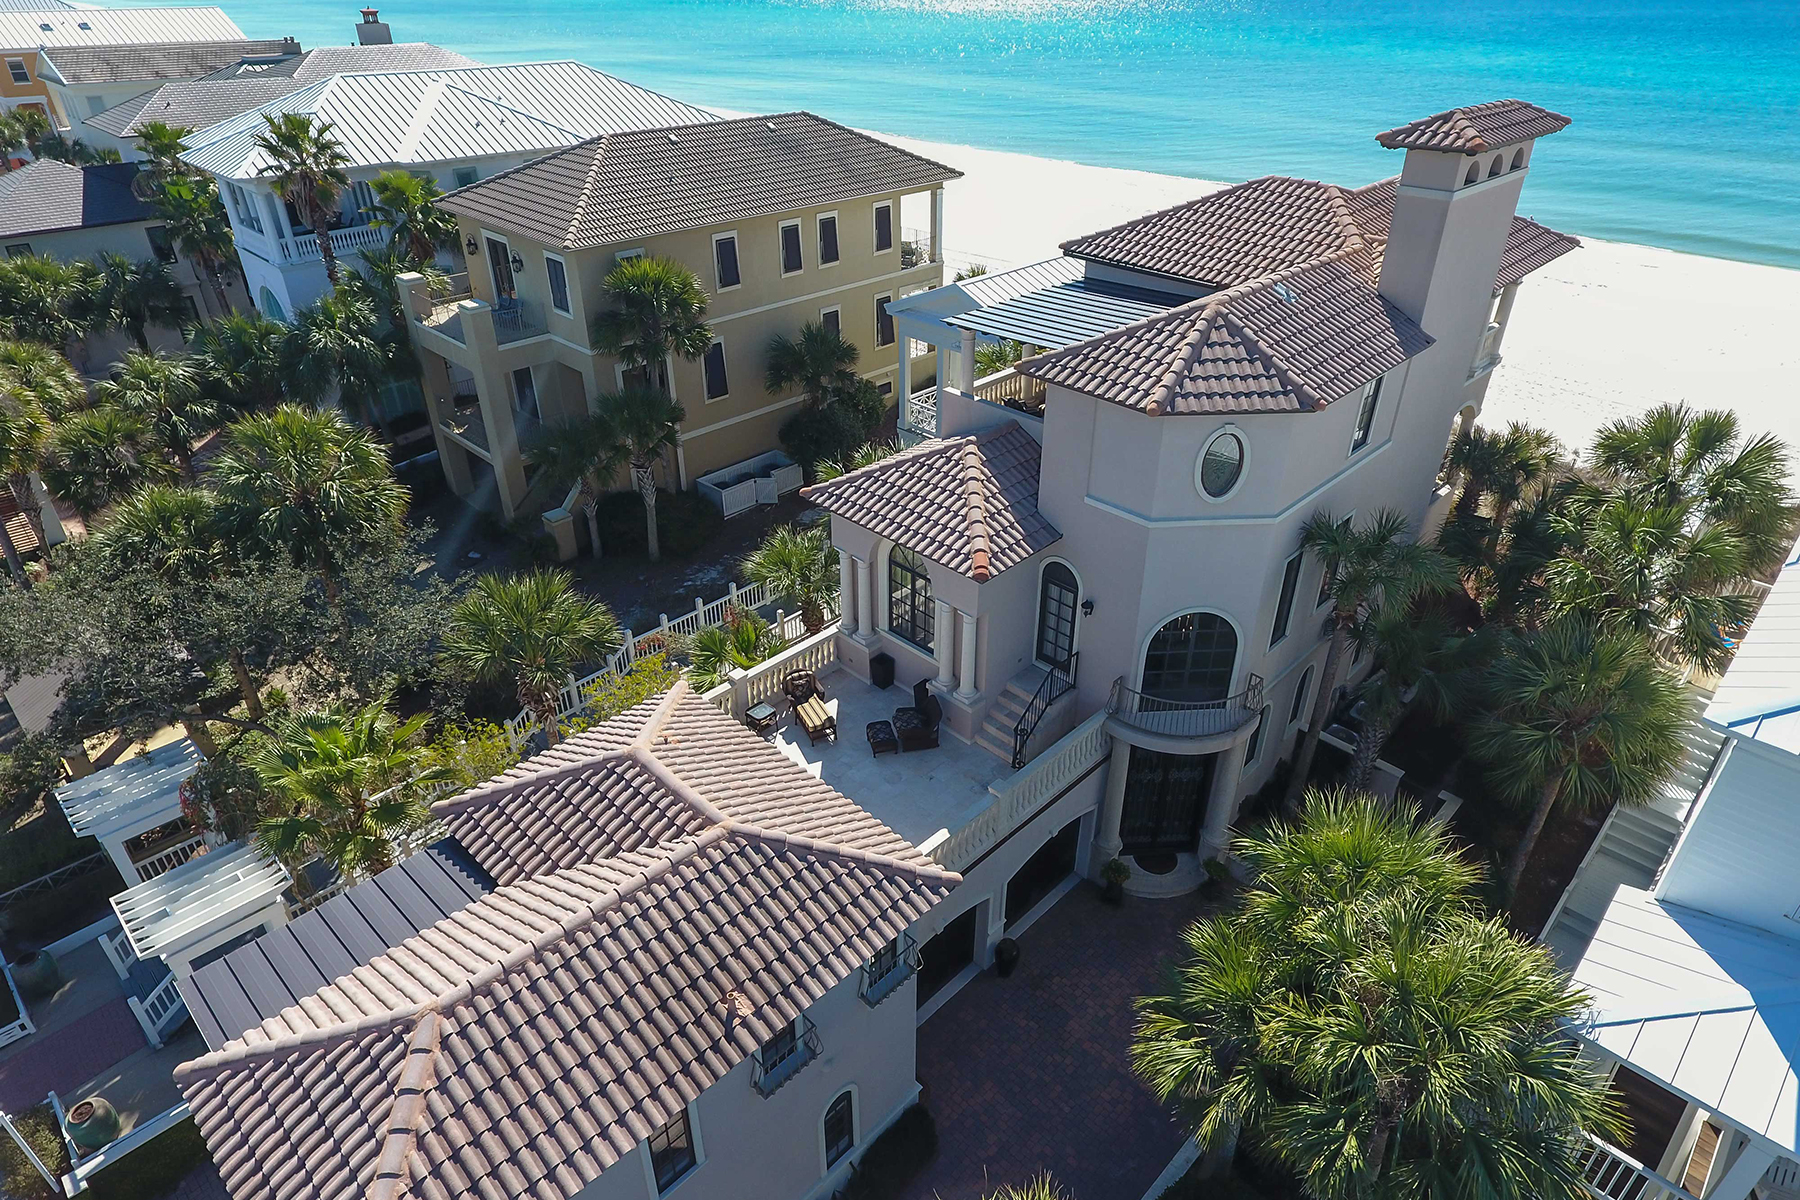 Casa Unifamiliar por un Venta en OCEANFRONT LUXURY WITH MEDITERRANEAN CLASS AND STYLE 314 Beachside Drive Carillon Beach, Panama City Beach, Florida, 32413 Estados Unidos